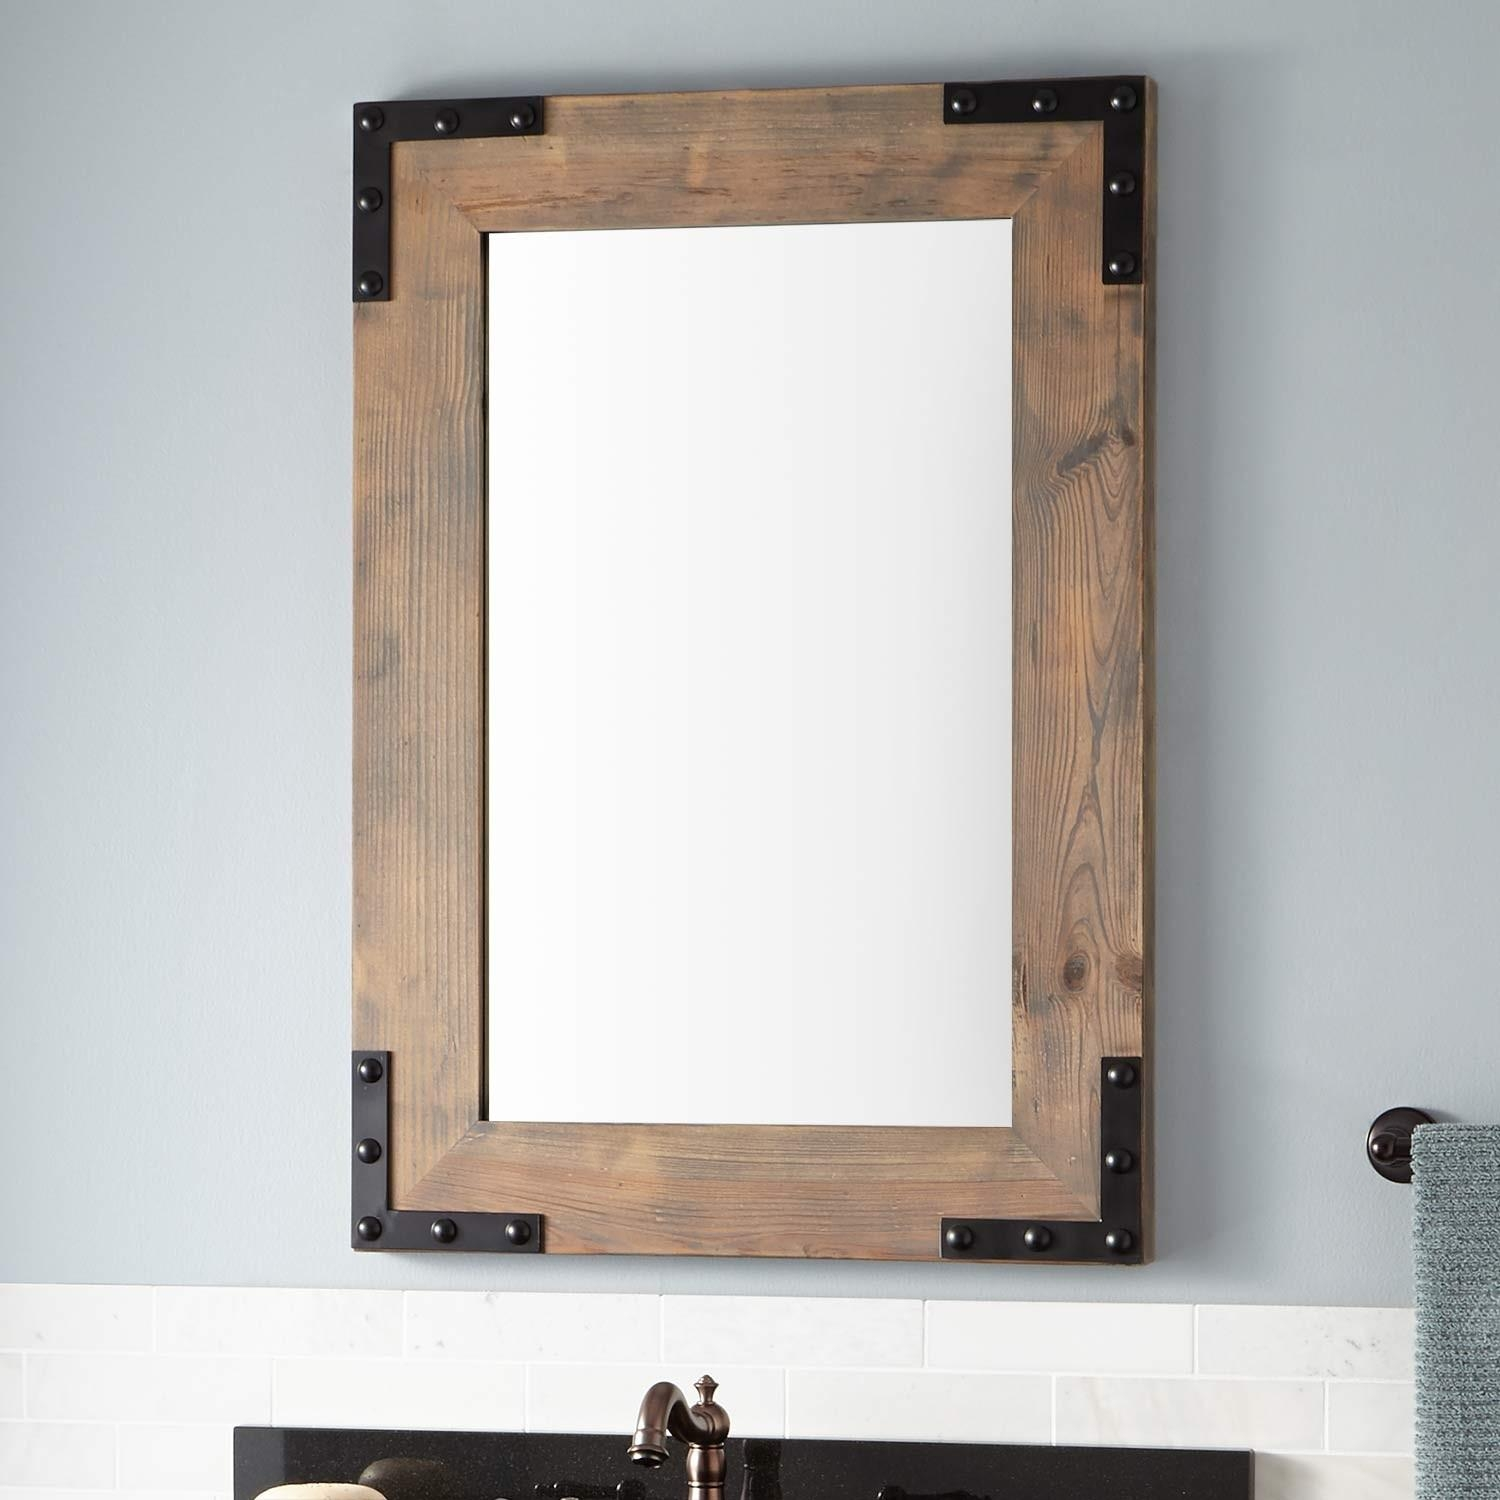 Framed Bathroom Mirrors | Signature Hardware In Frames Mirrors (Image 10 of 20)